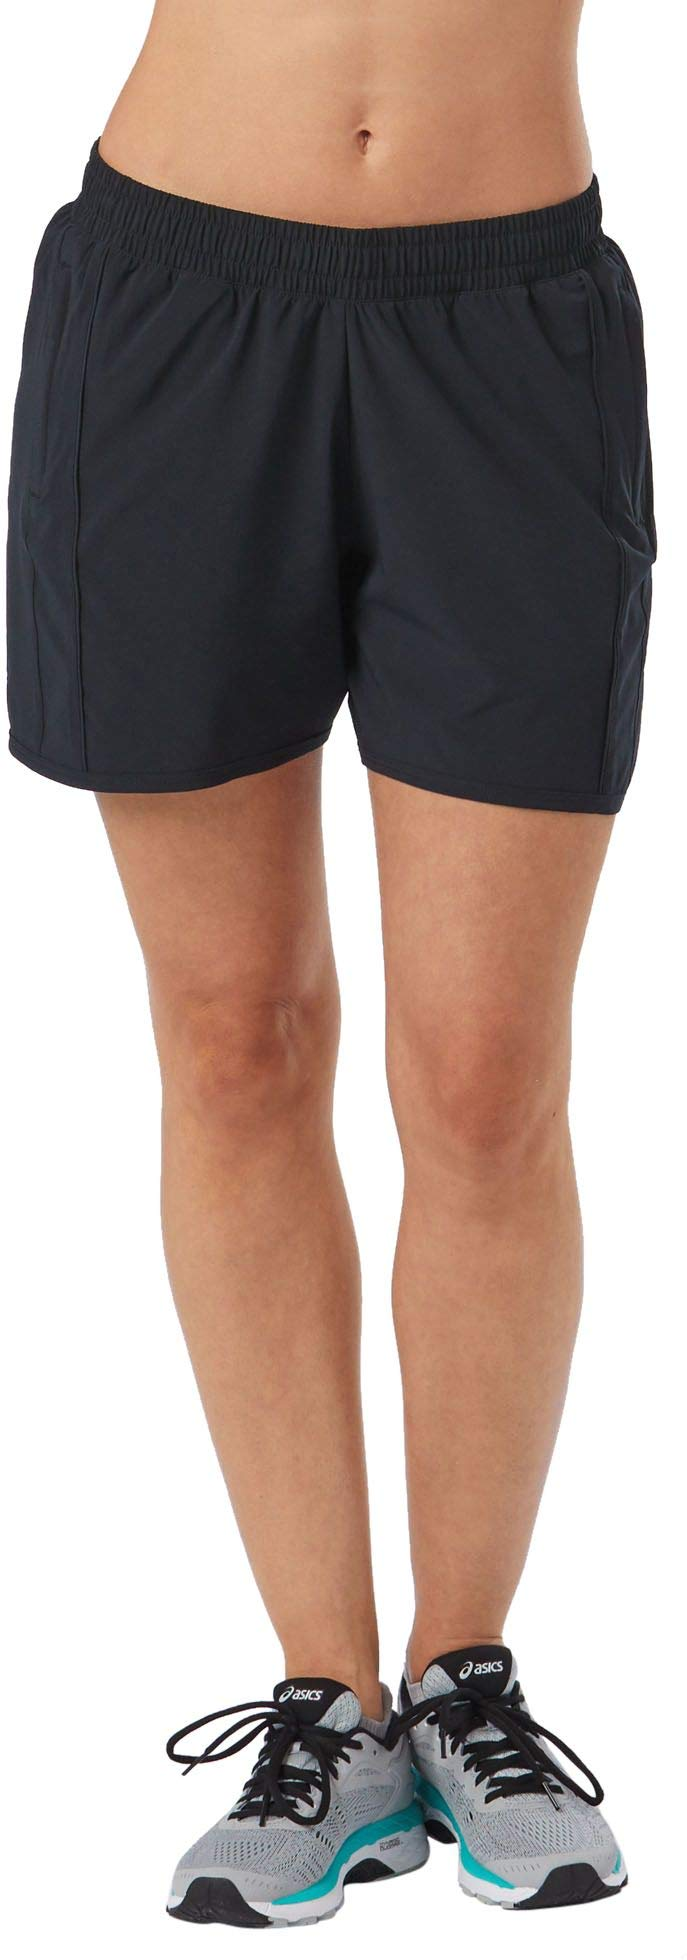 R-Gear Women's High Five Running Shorts 5-inch Length | Multiple Pockets with Zippers, Inner Brief Liner, Breathable Fabric, Black, S